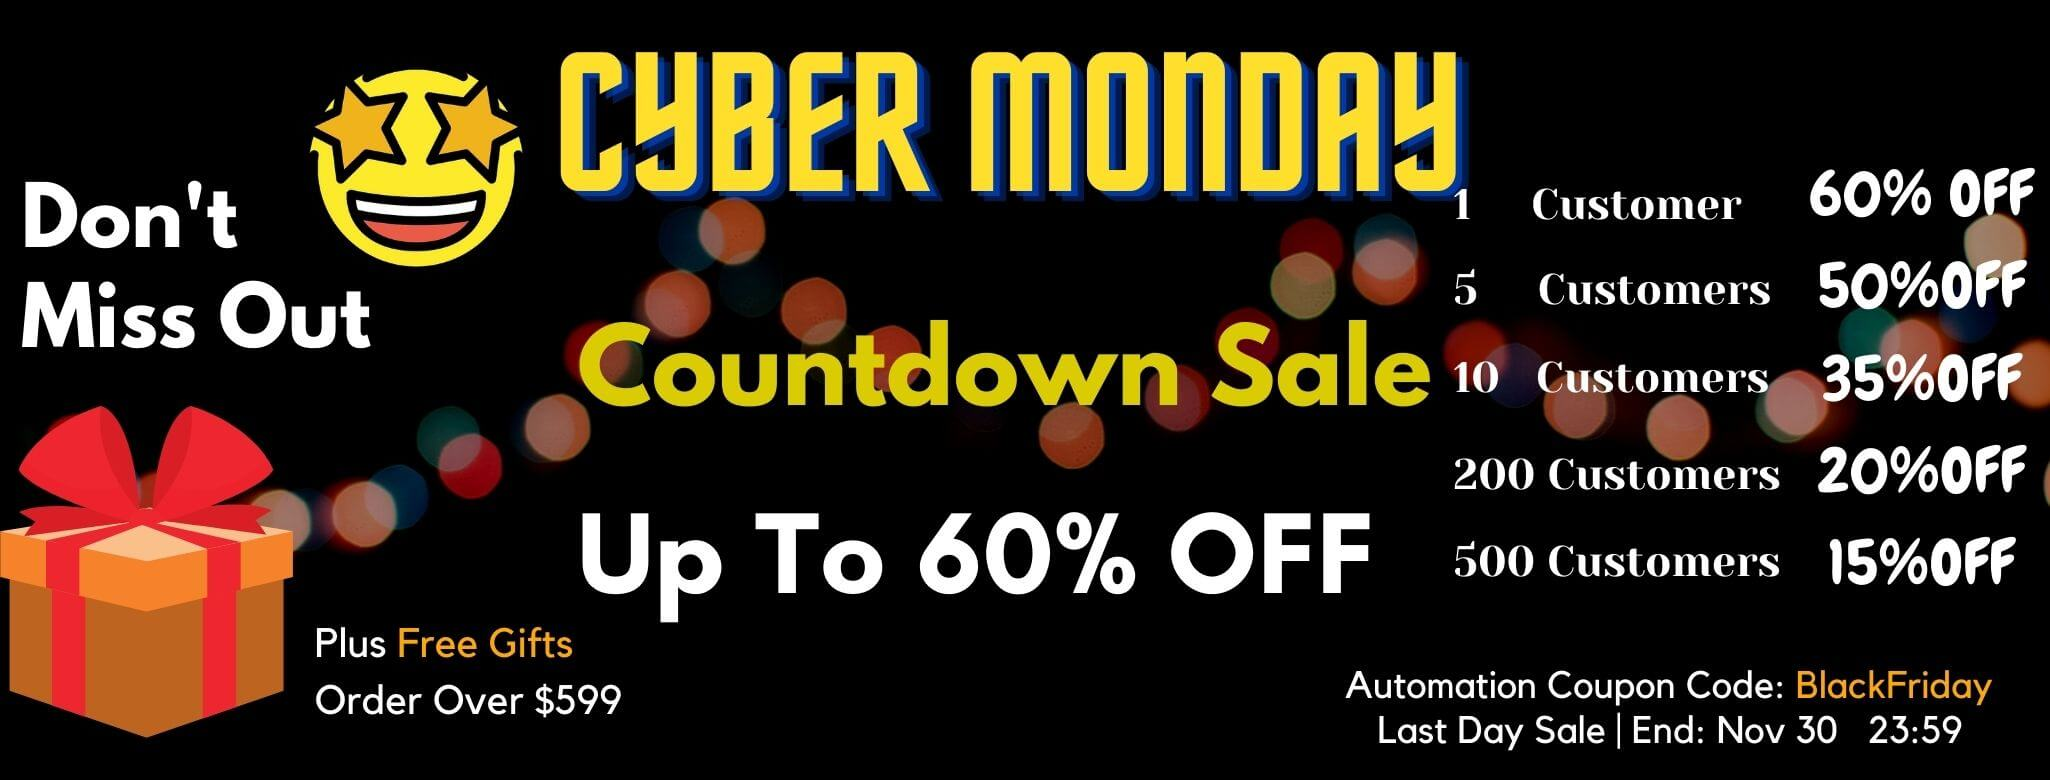 7PMHOME Cyber Monday Countdown Sale